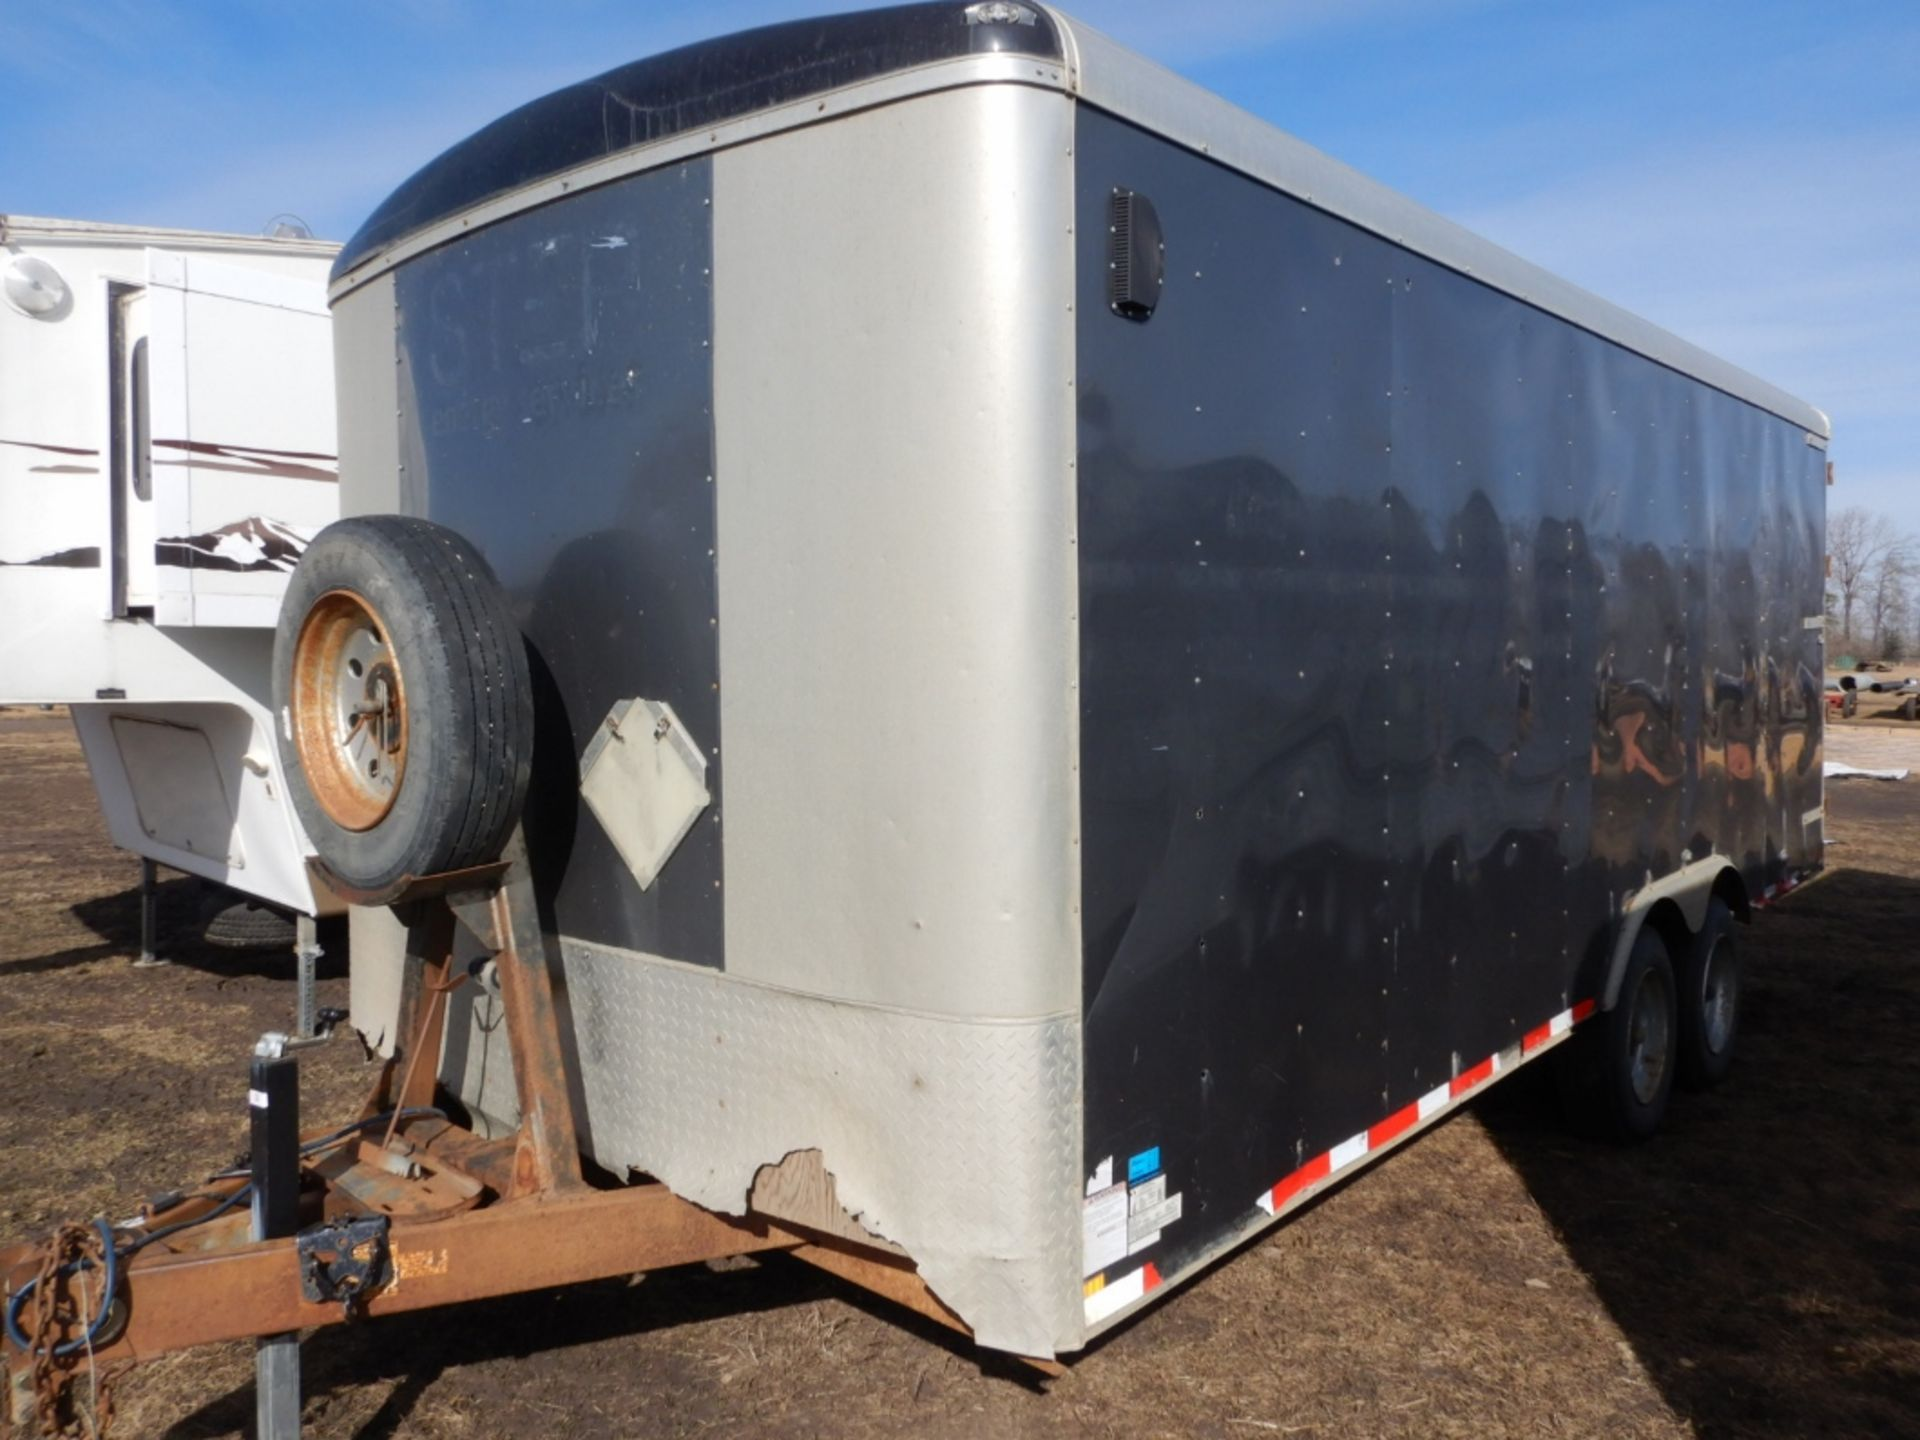 04/2012 TNT TRAILER - 20 FT T/A ENCLOSED TRAILER W/REAR BARN DOORS, S/N 5WBBE20226CW0058005 - Image 2 of 7